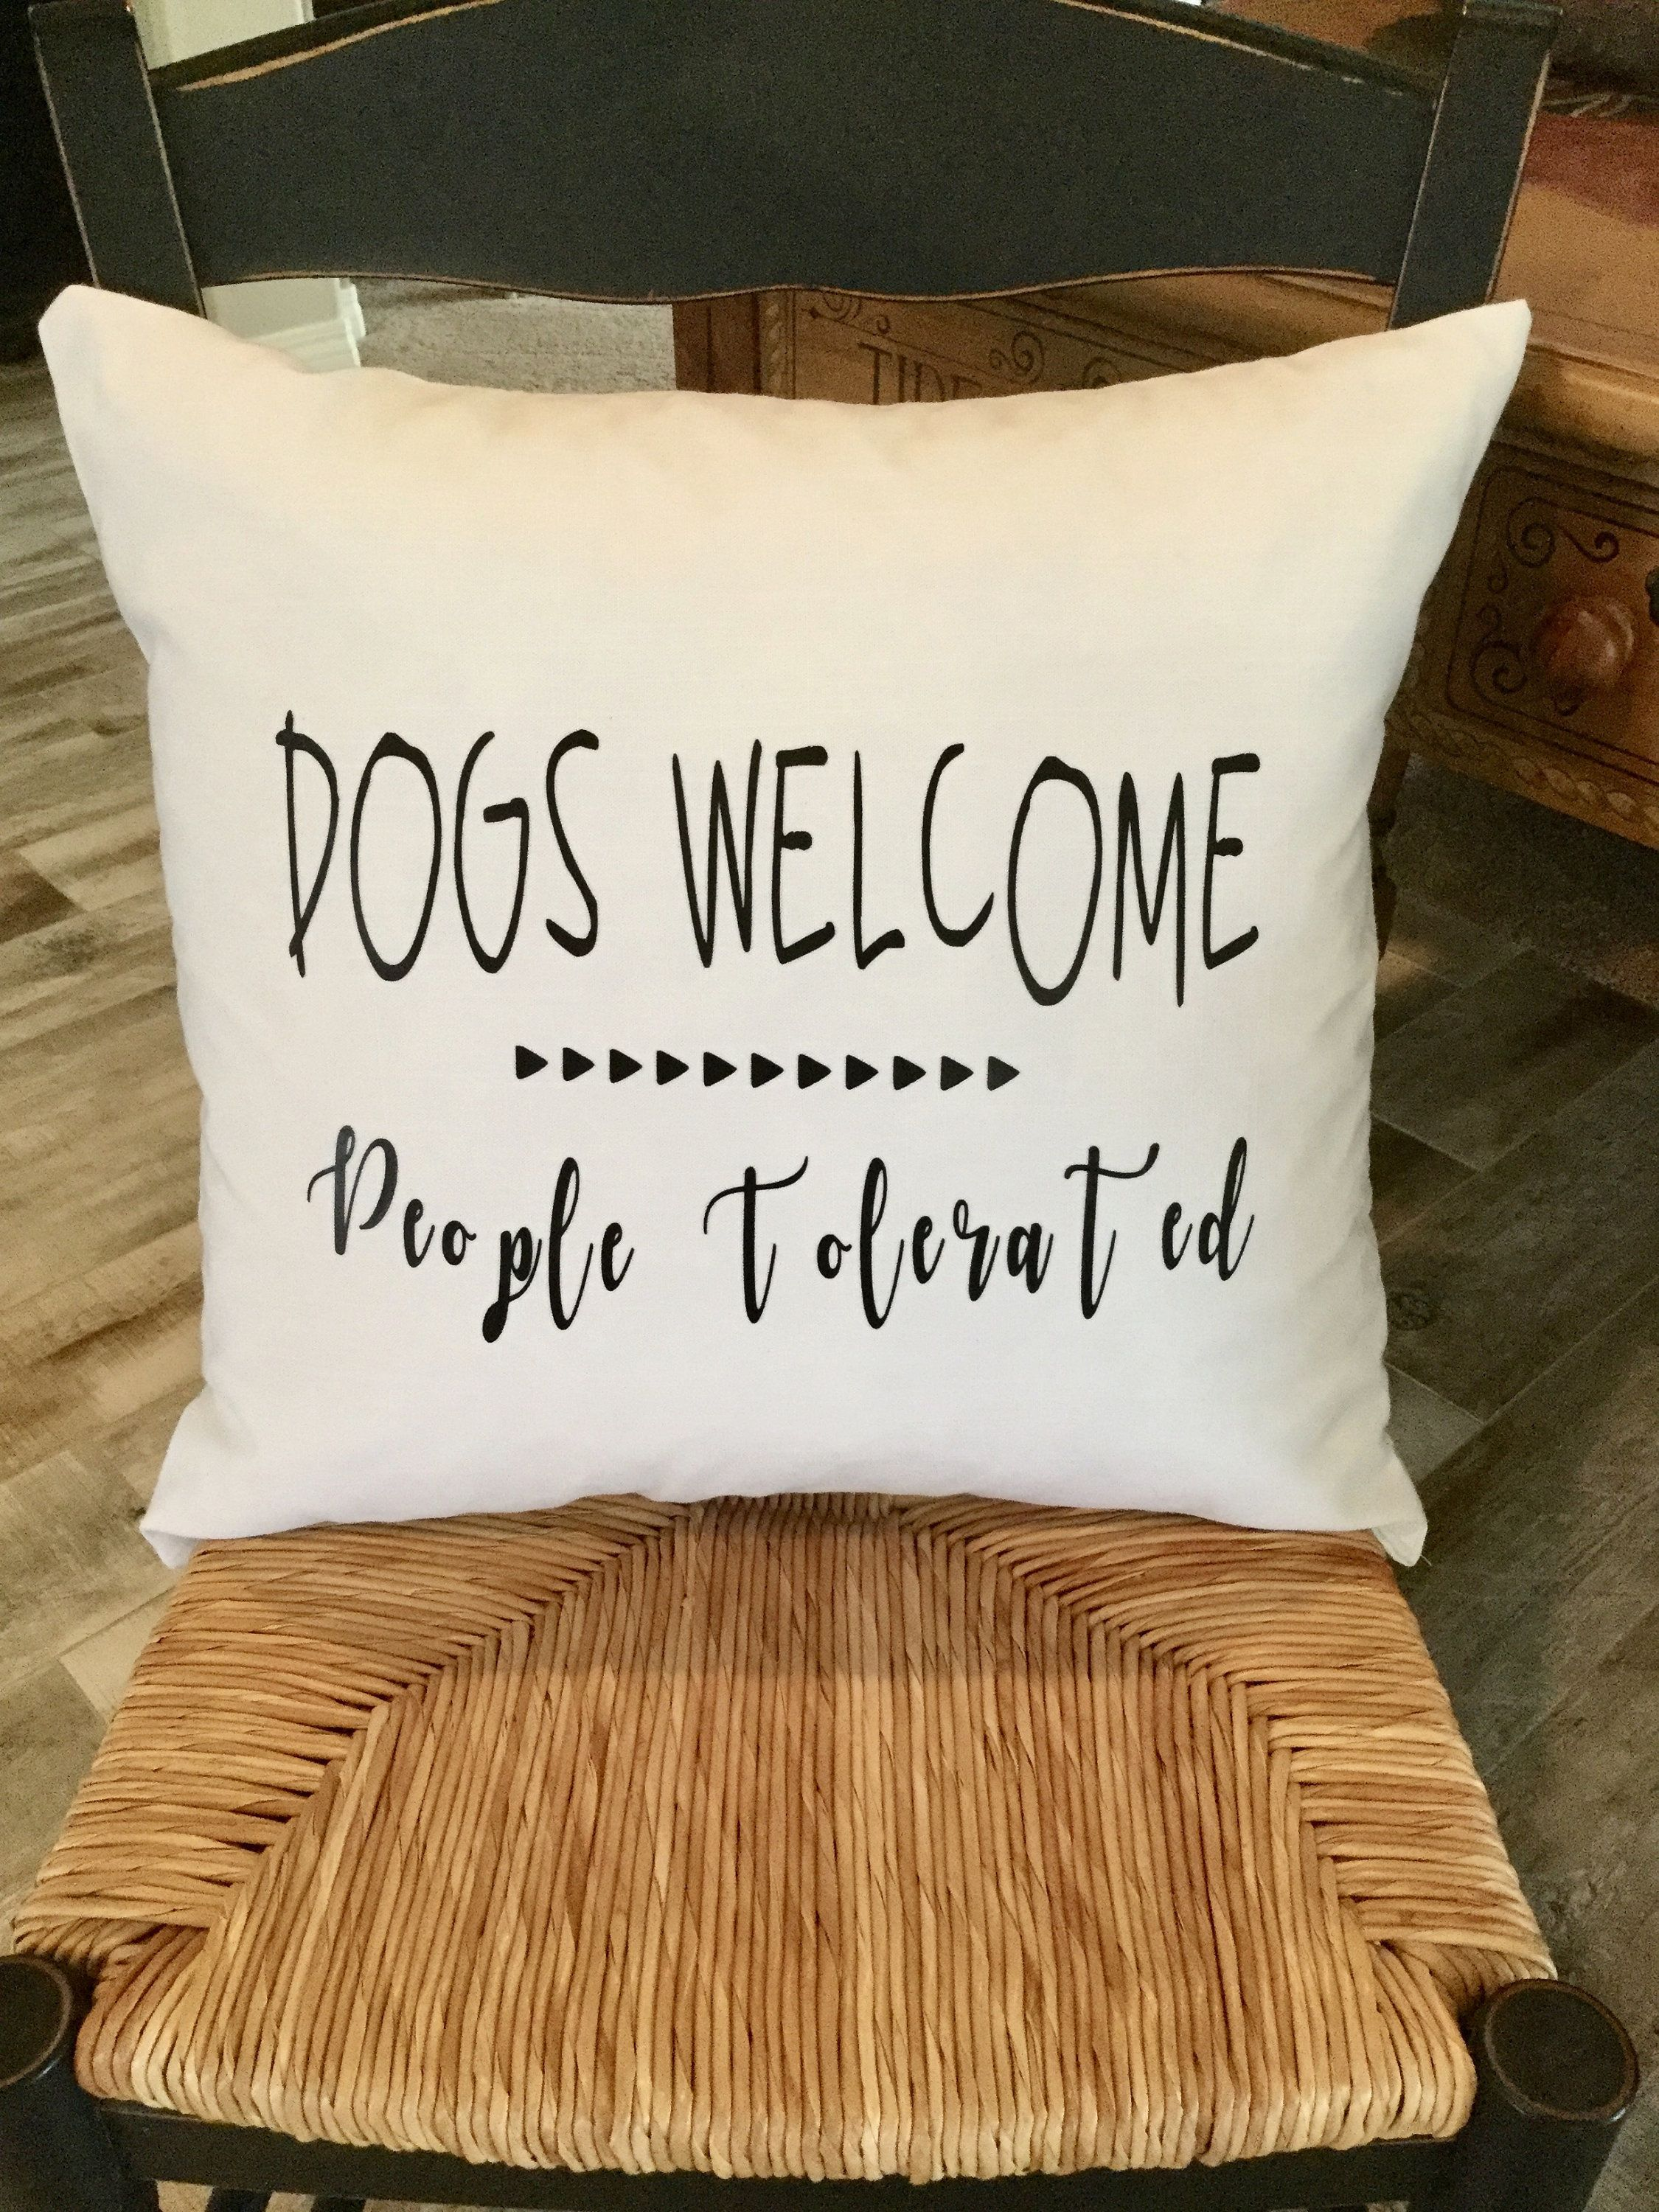 Feather Pillows With Sayings Dogs Welcome People Tolerated Feather Pillows Pillows Pillow Quotes